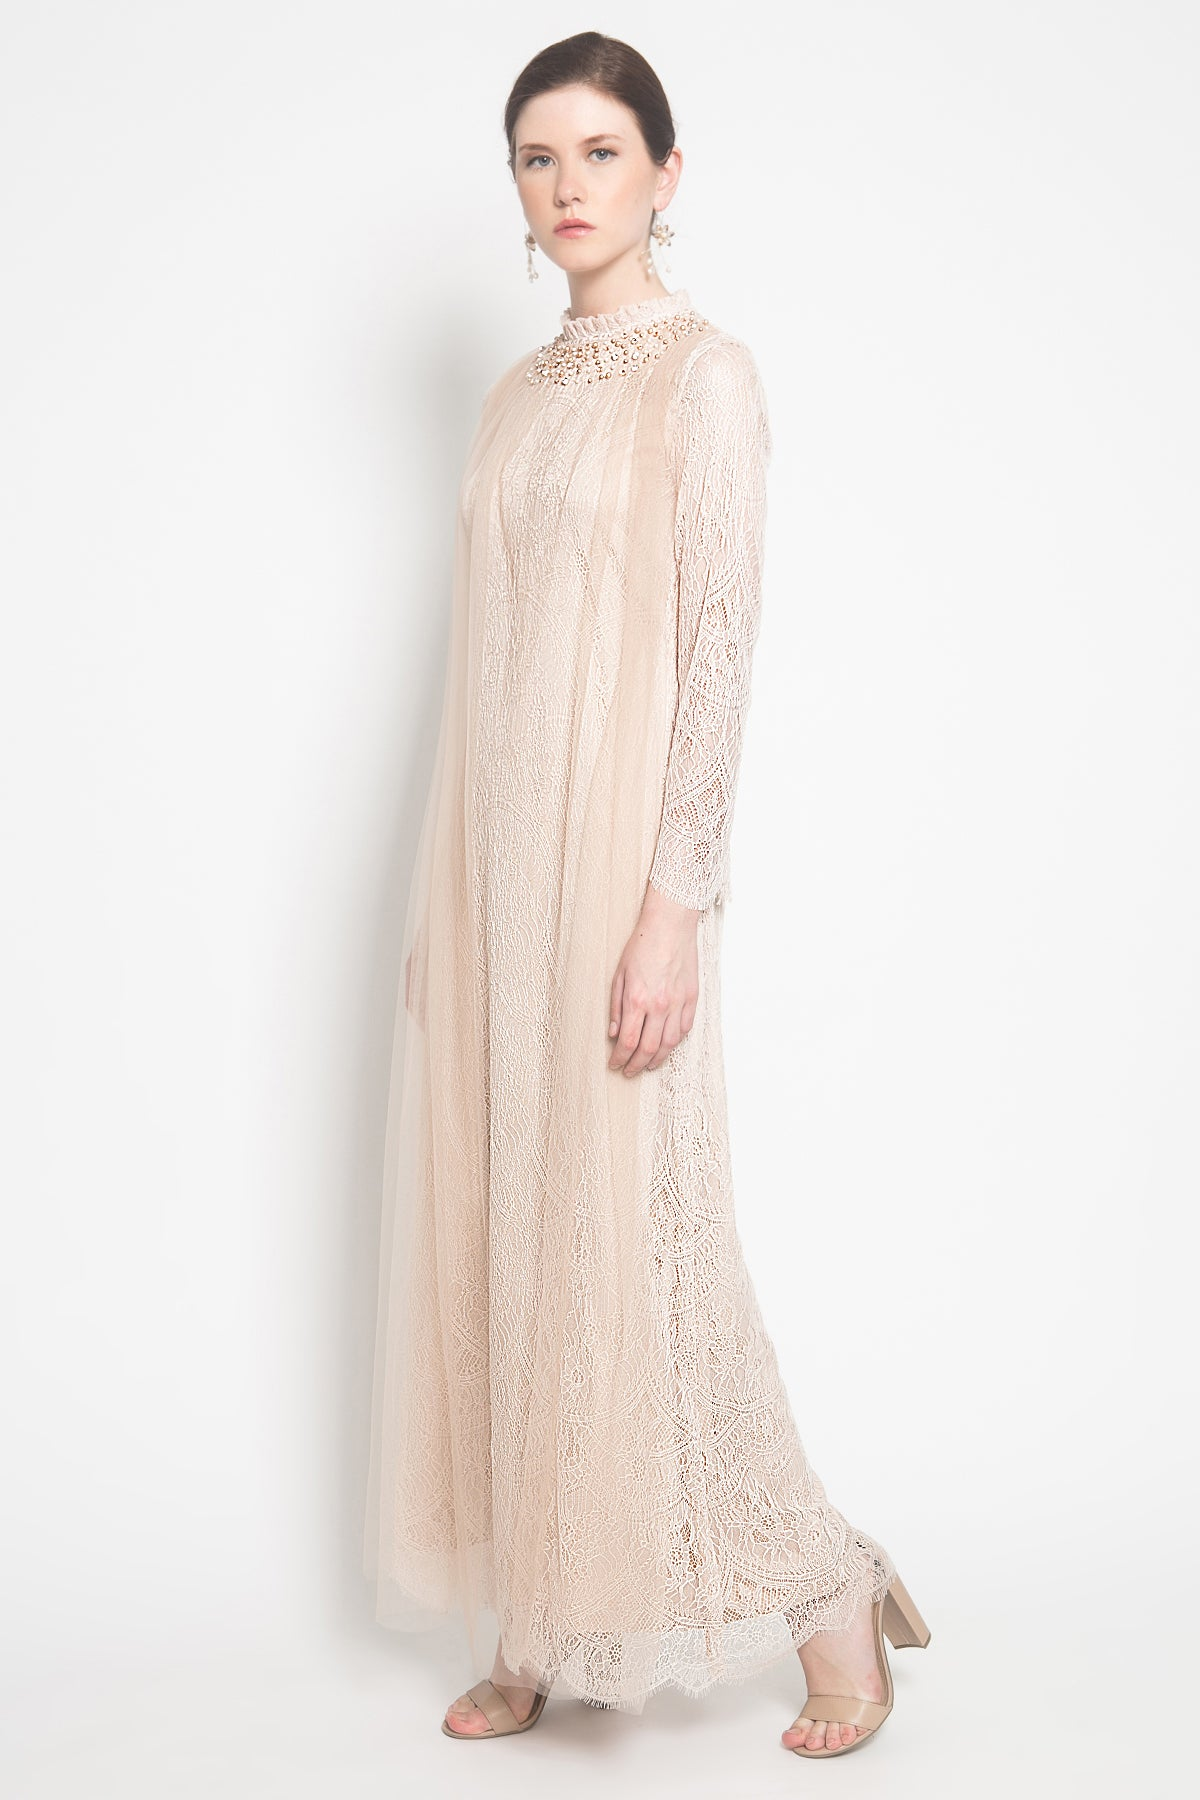 Arendelle Dress in Nude